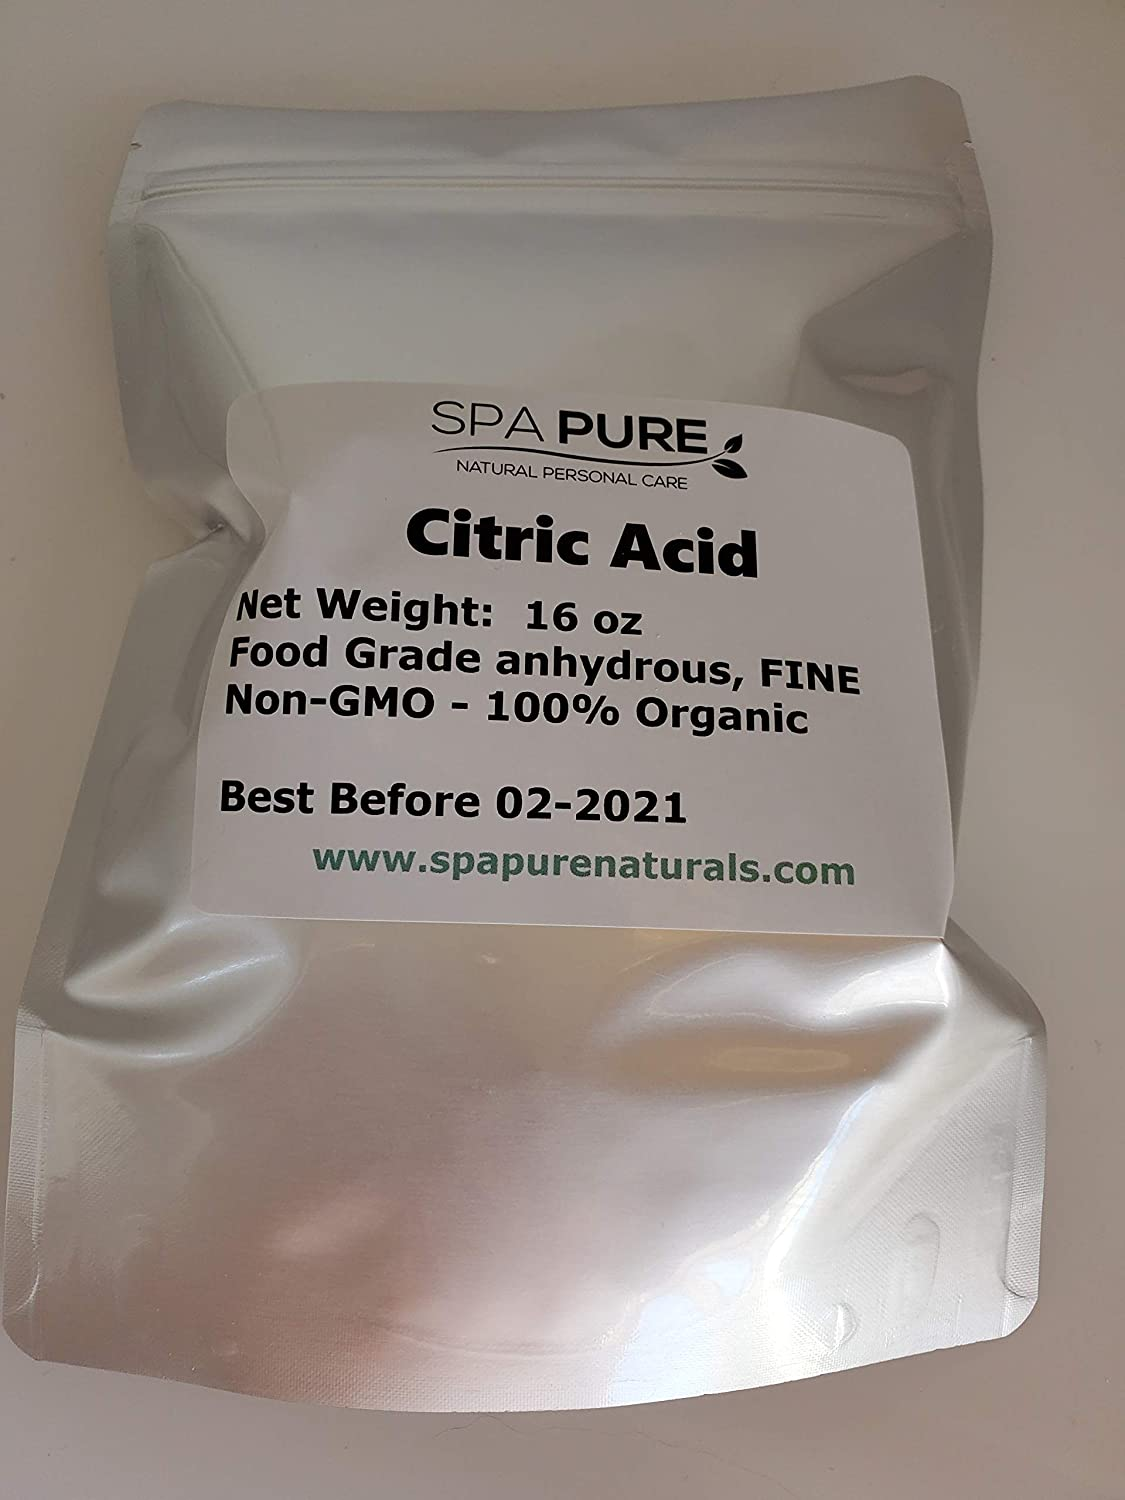 PURE CITRIC ACID, 1 POUND, Food Grade, Non-GMO, Organic, best for making bath bombs, wine, home brew or cleaner (1 lb)